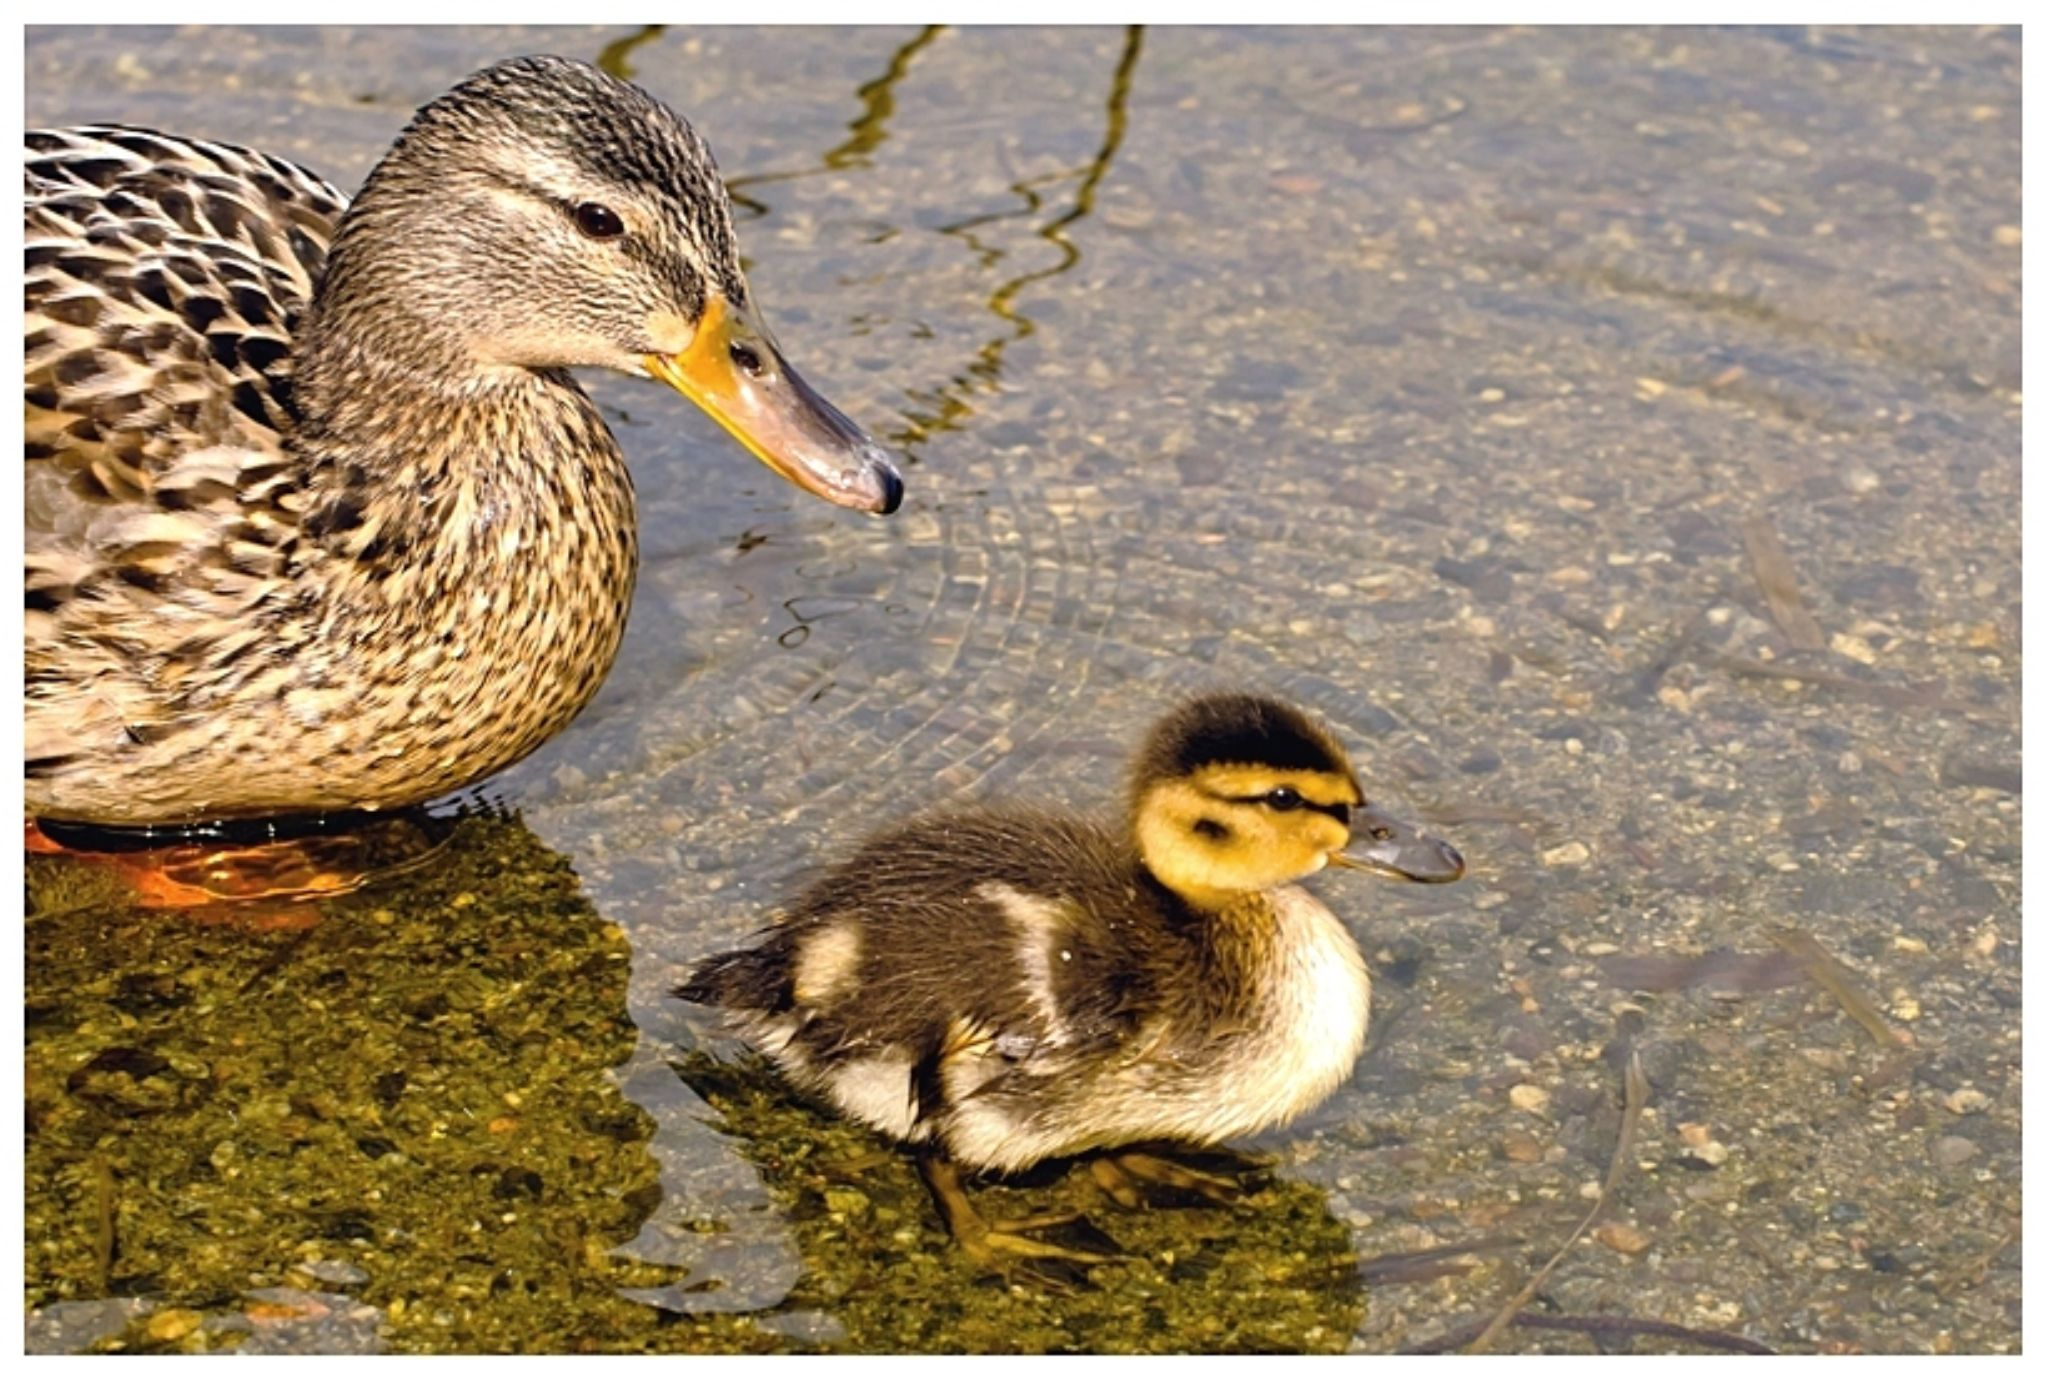 Mother duck and duckling by Elisabeth Garberg